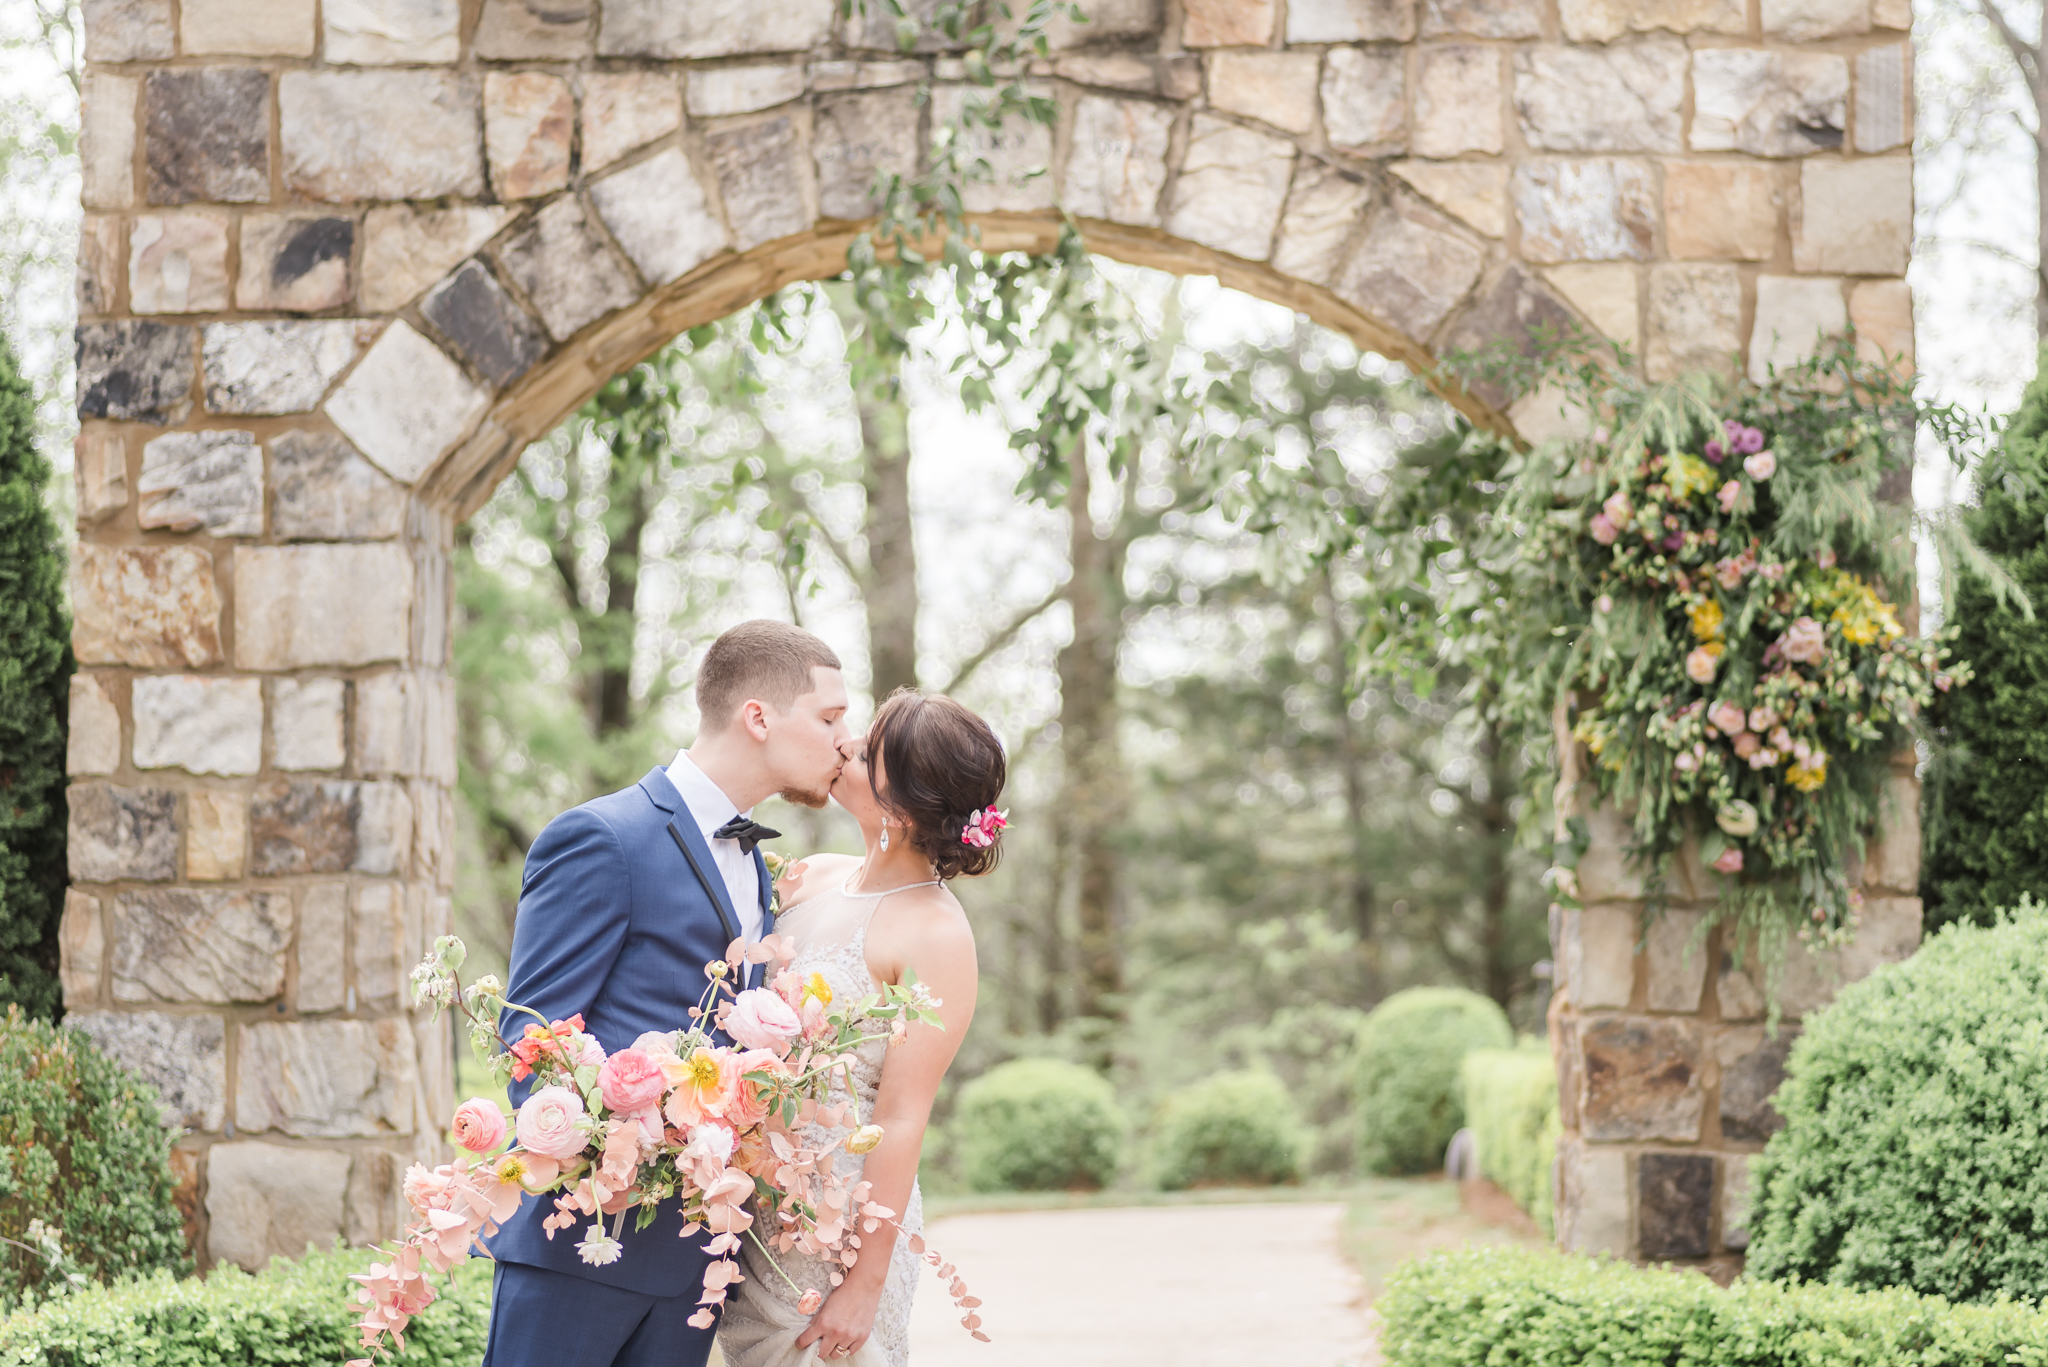 The Best Light and Airy Indianapolis Wedding Photographers.jpg